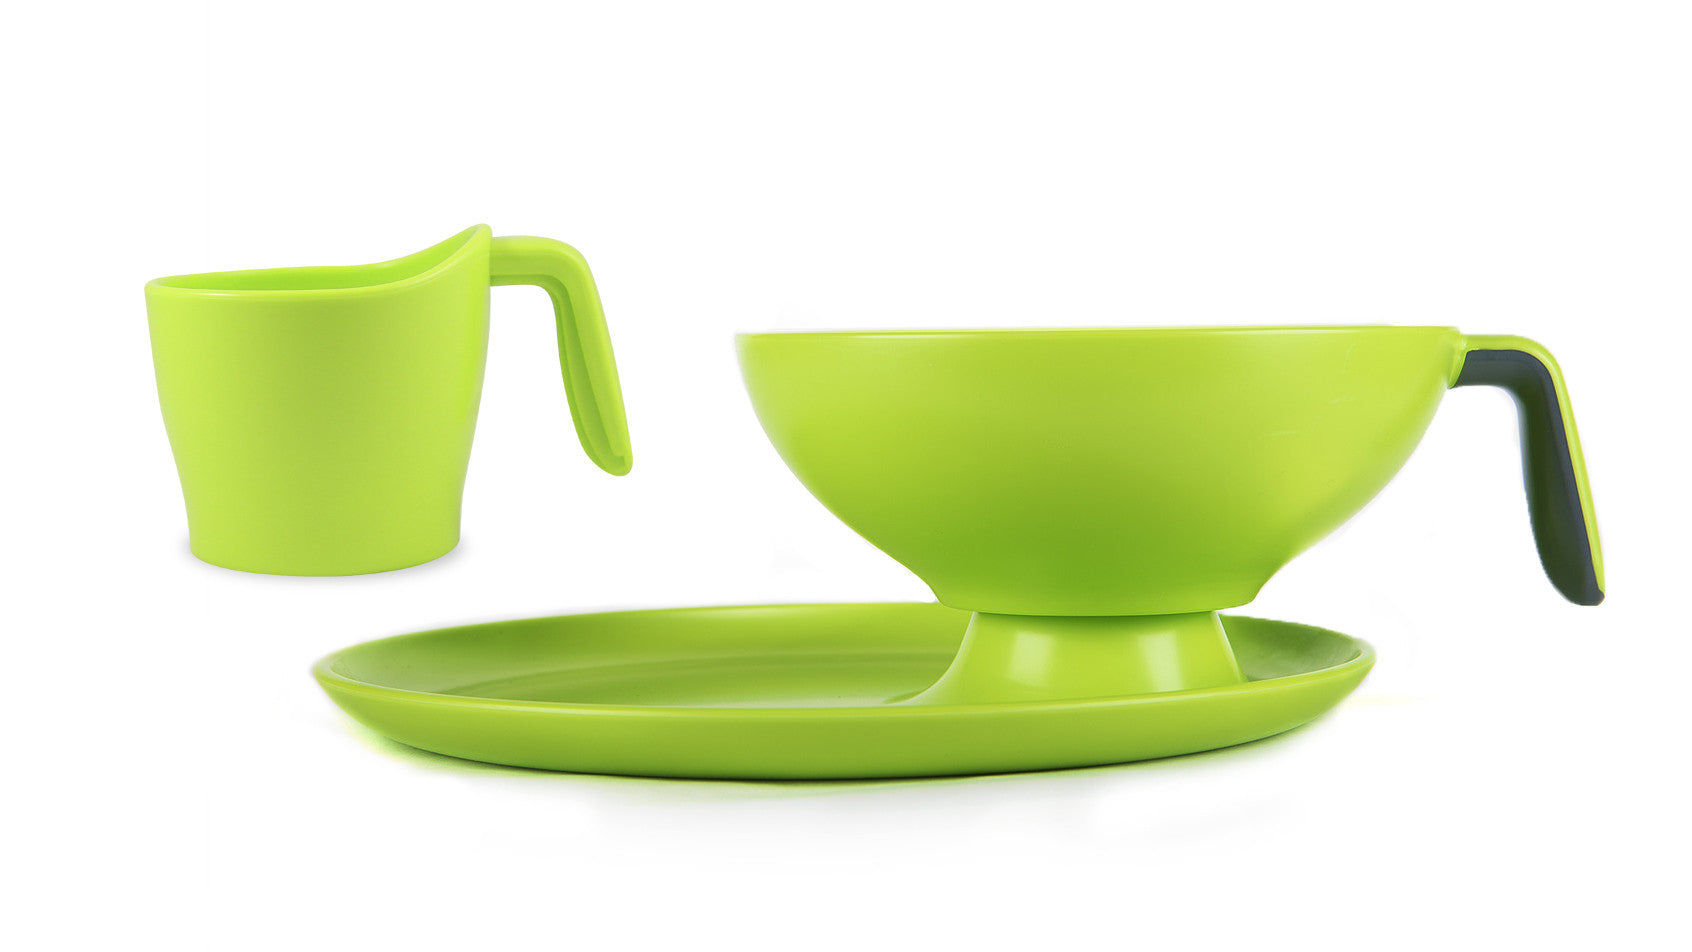 1 Ripple Set - Green with gray handle bowl, cup and plate